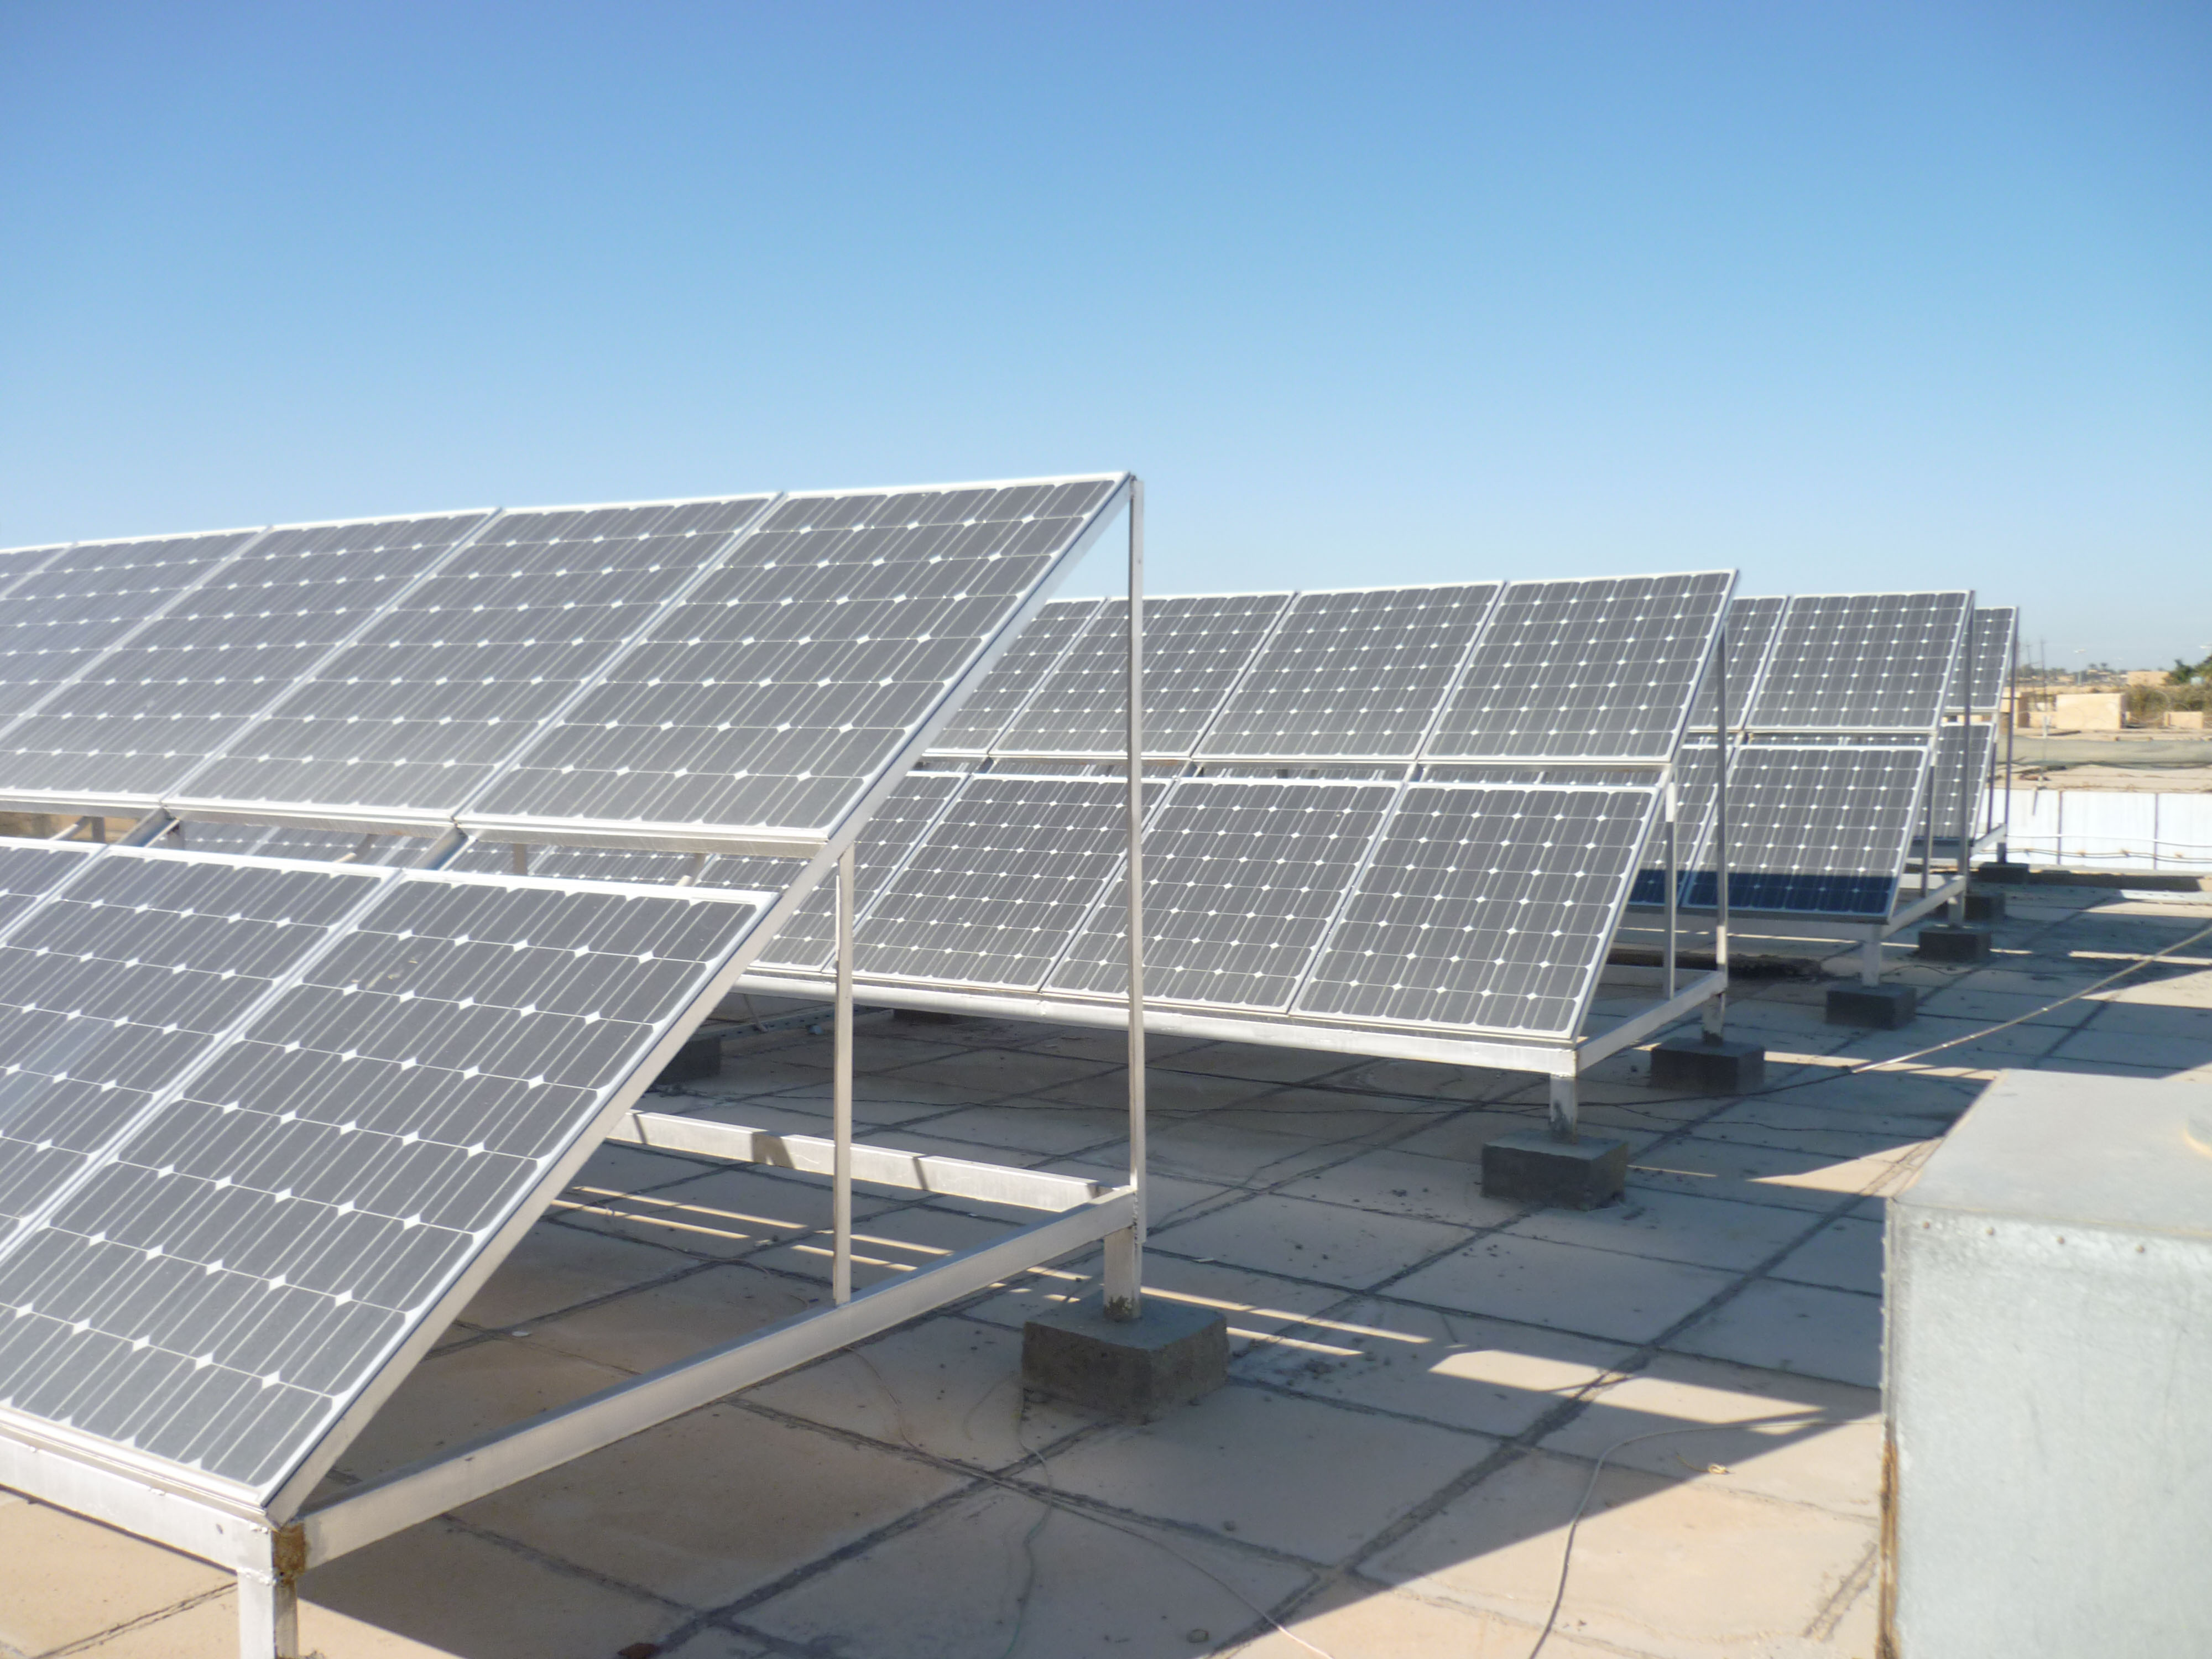 Beaufort Considering Solar Energy To Power City Buildings